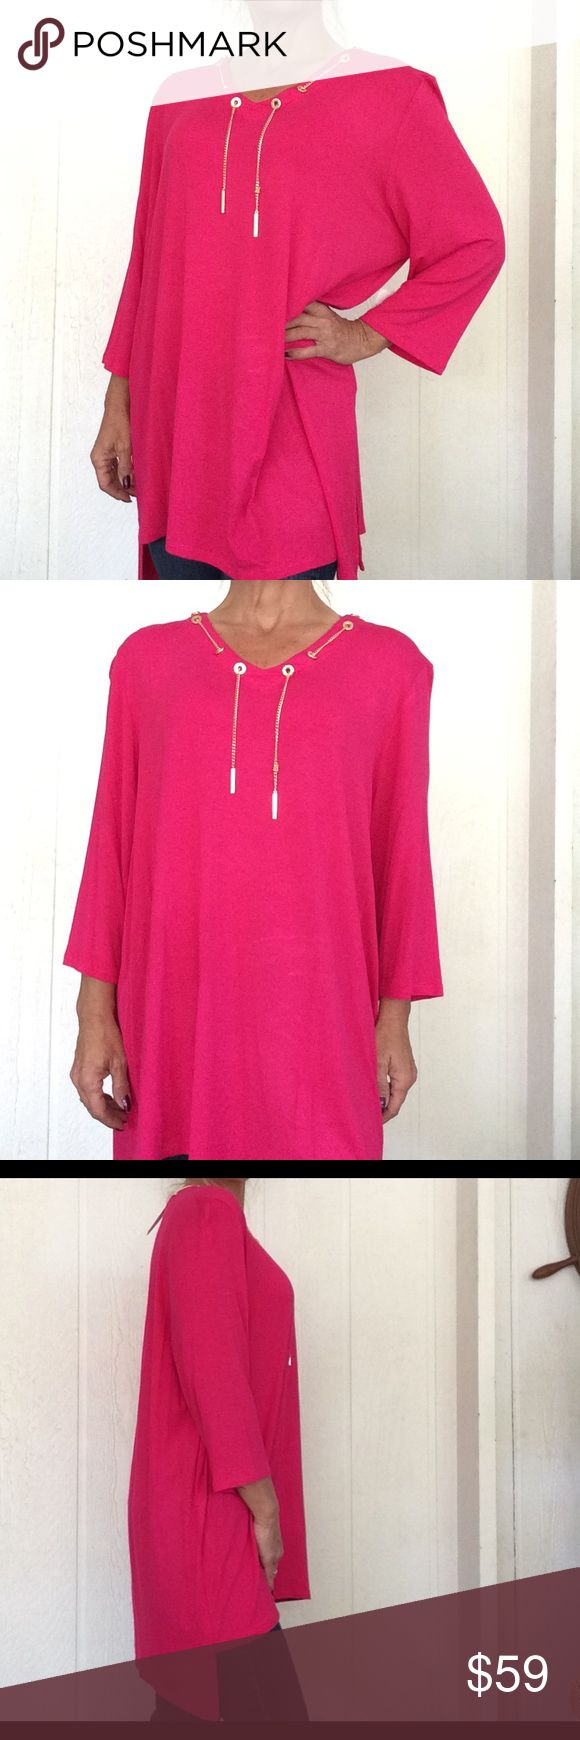 NWT CHAIN NECKLACE TUNIC NWT Stunning gold tone chain with gold bars are woven through the v neck of this gorgeous tunic. Hot pink color sets off gleaming goldtone hardware. Del Cate chain is woven all the way around neckline. Can be tied or left loose. Longer hem in back to cover derrière. 3/4 length sleeves.  Perfect with black leggings!  No flaws of any kind. T&0 Tops Tunics